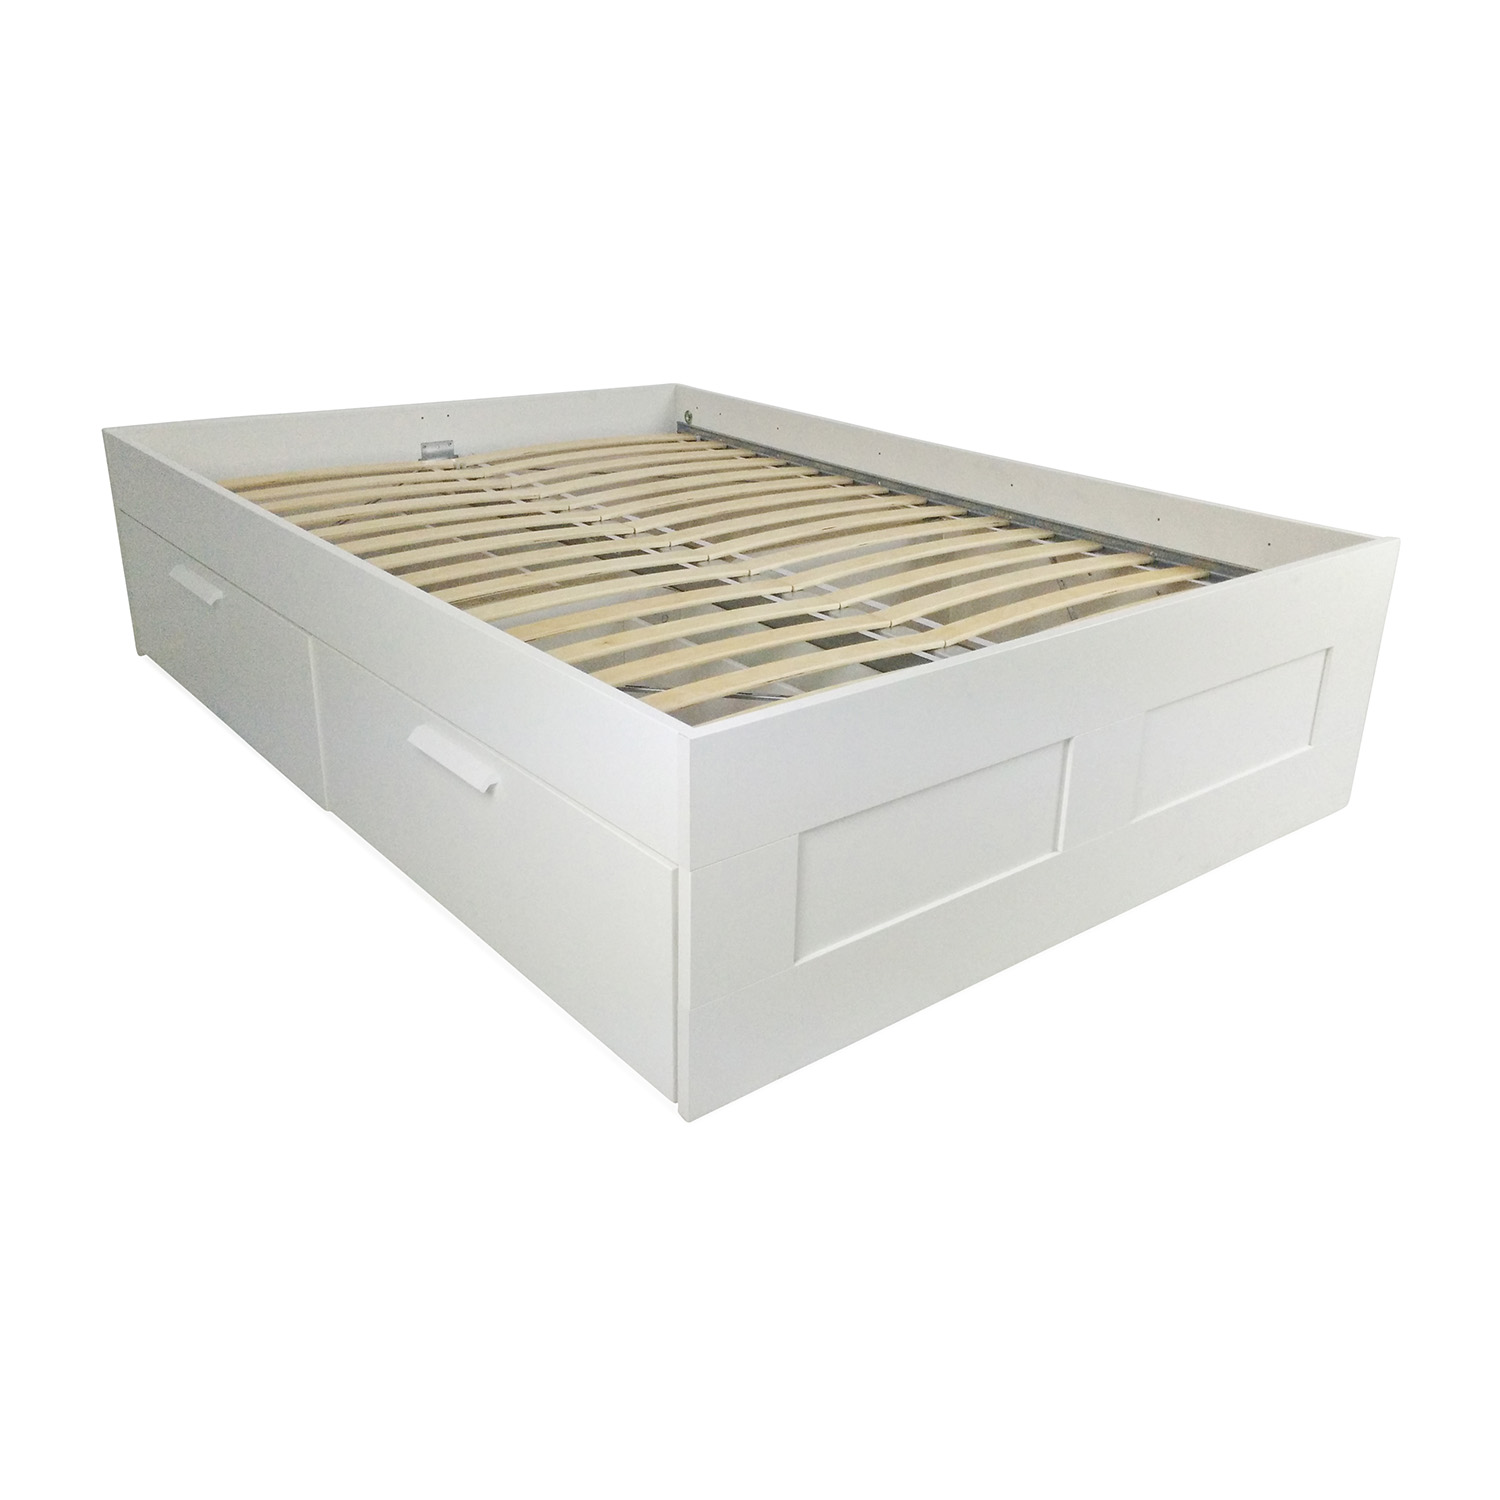 Bedbanken Ikea Cheap Day Bed With Trundle Ikea Daybed Metal